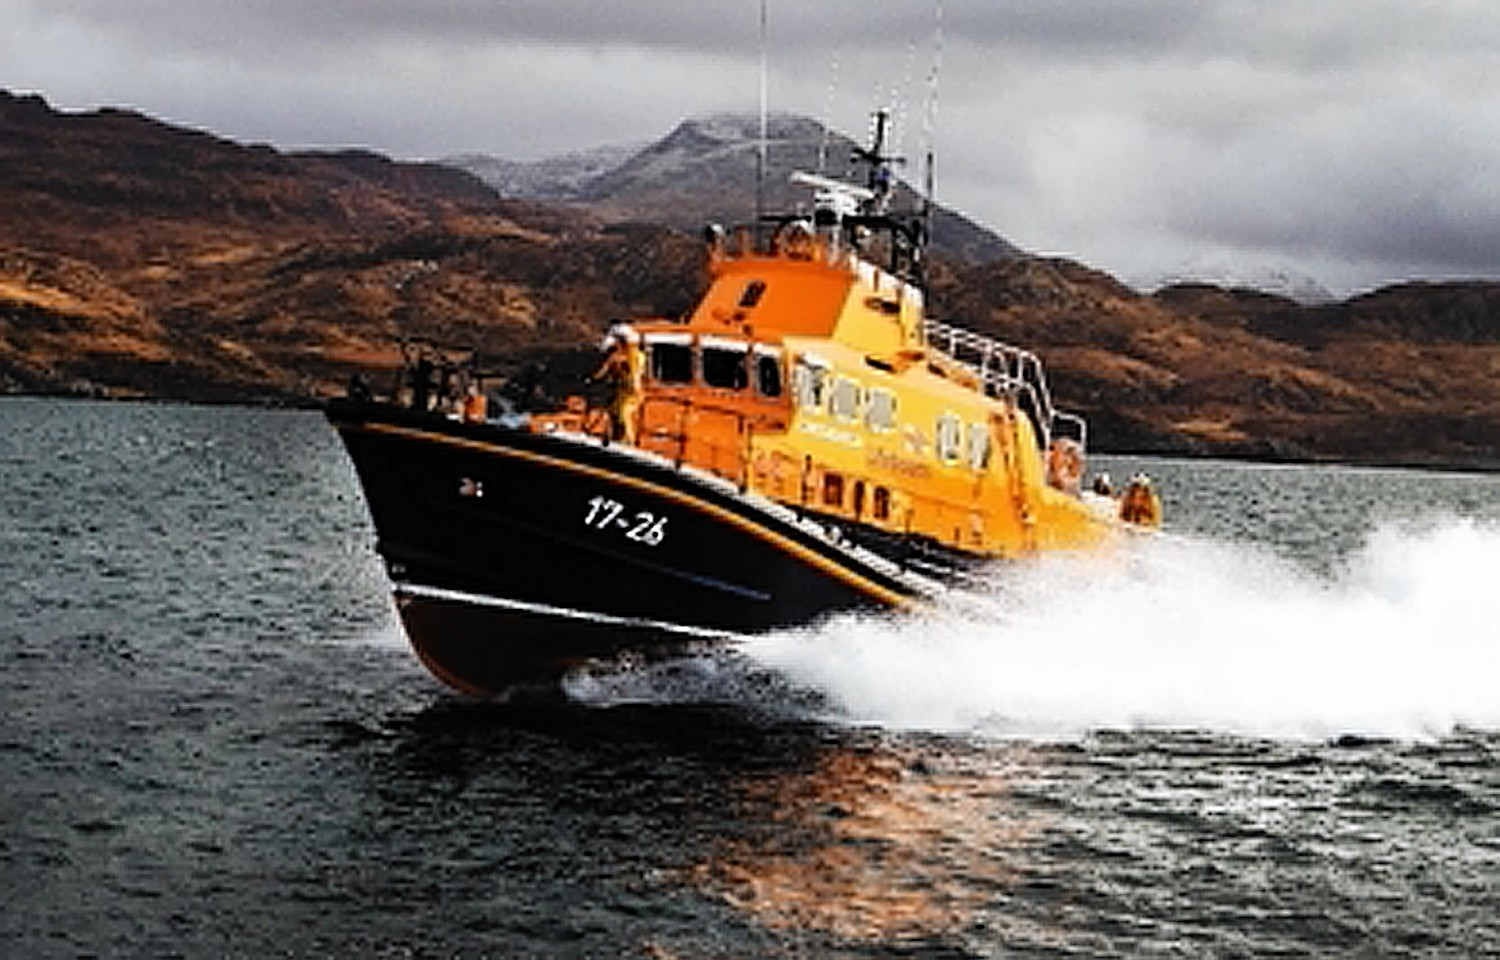 Mallaig Lifeboat was called to tow a fishing vessel taking on water